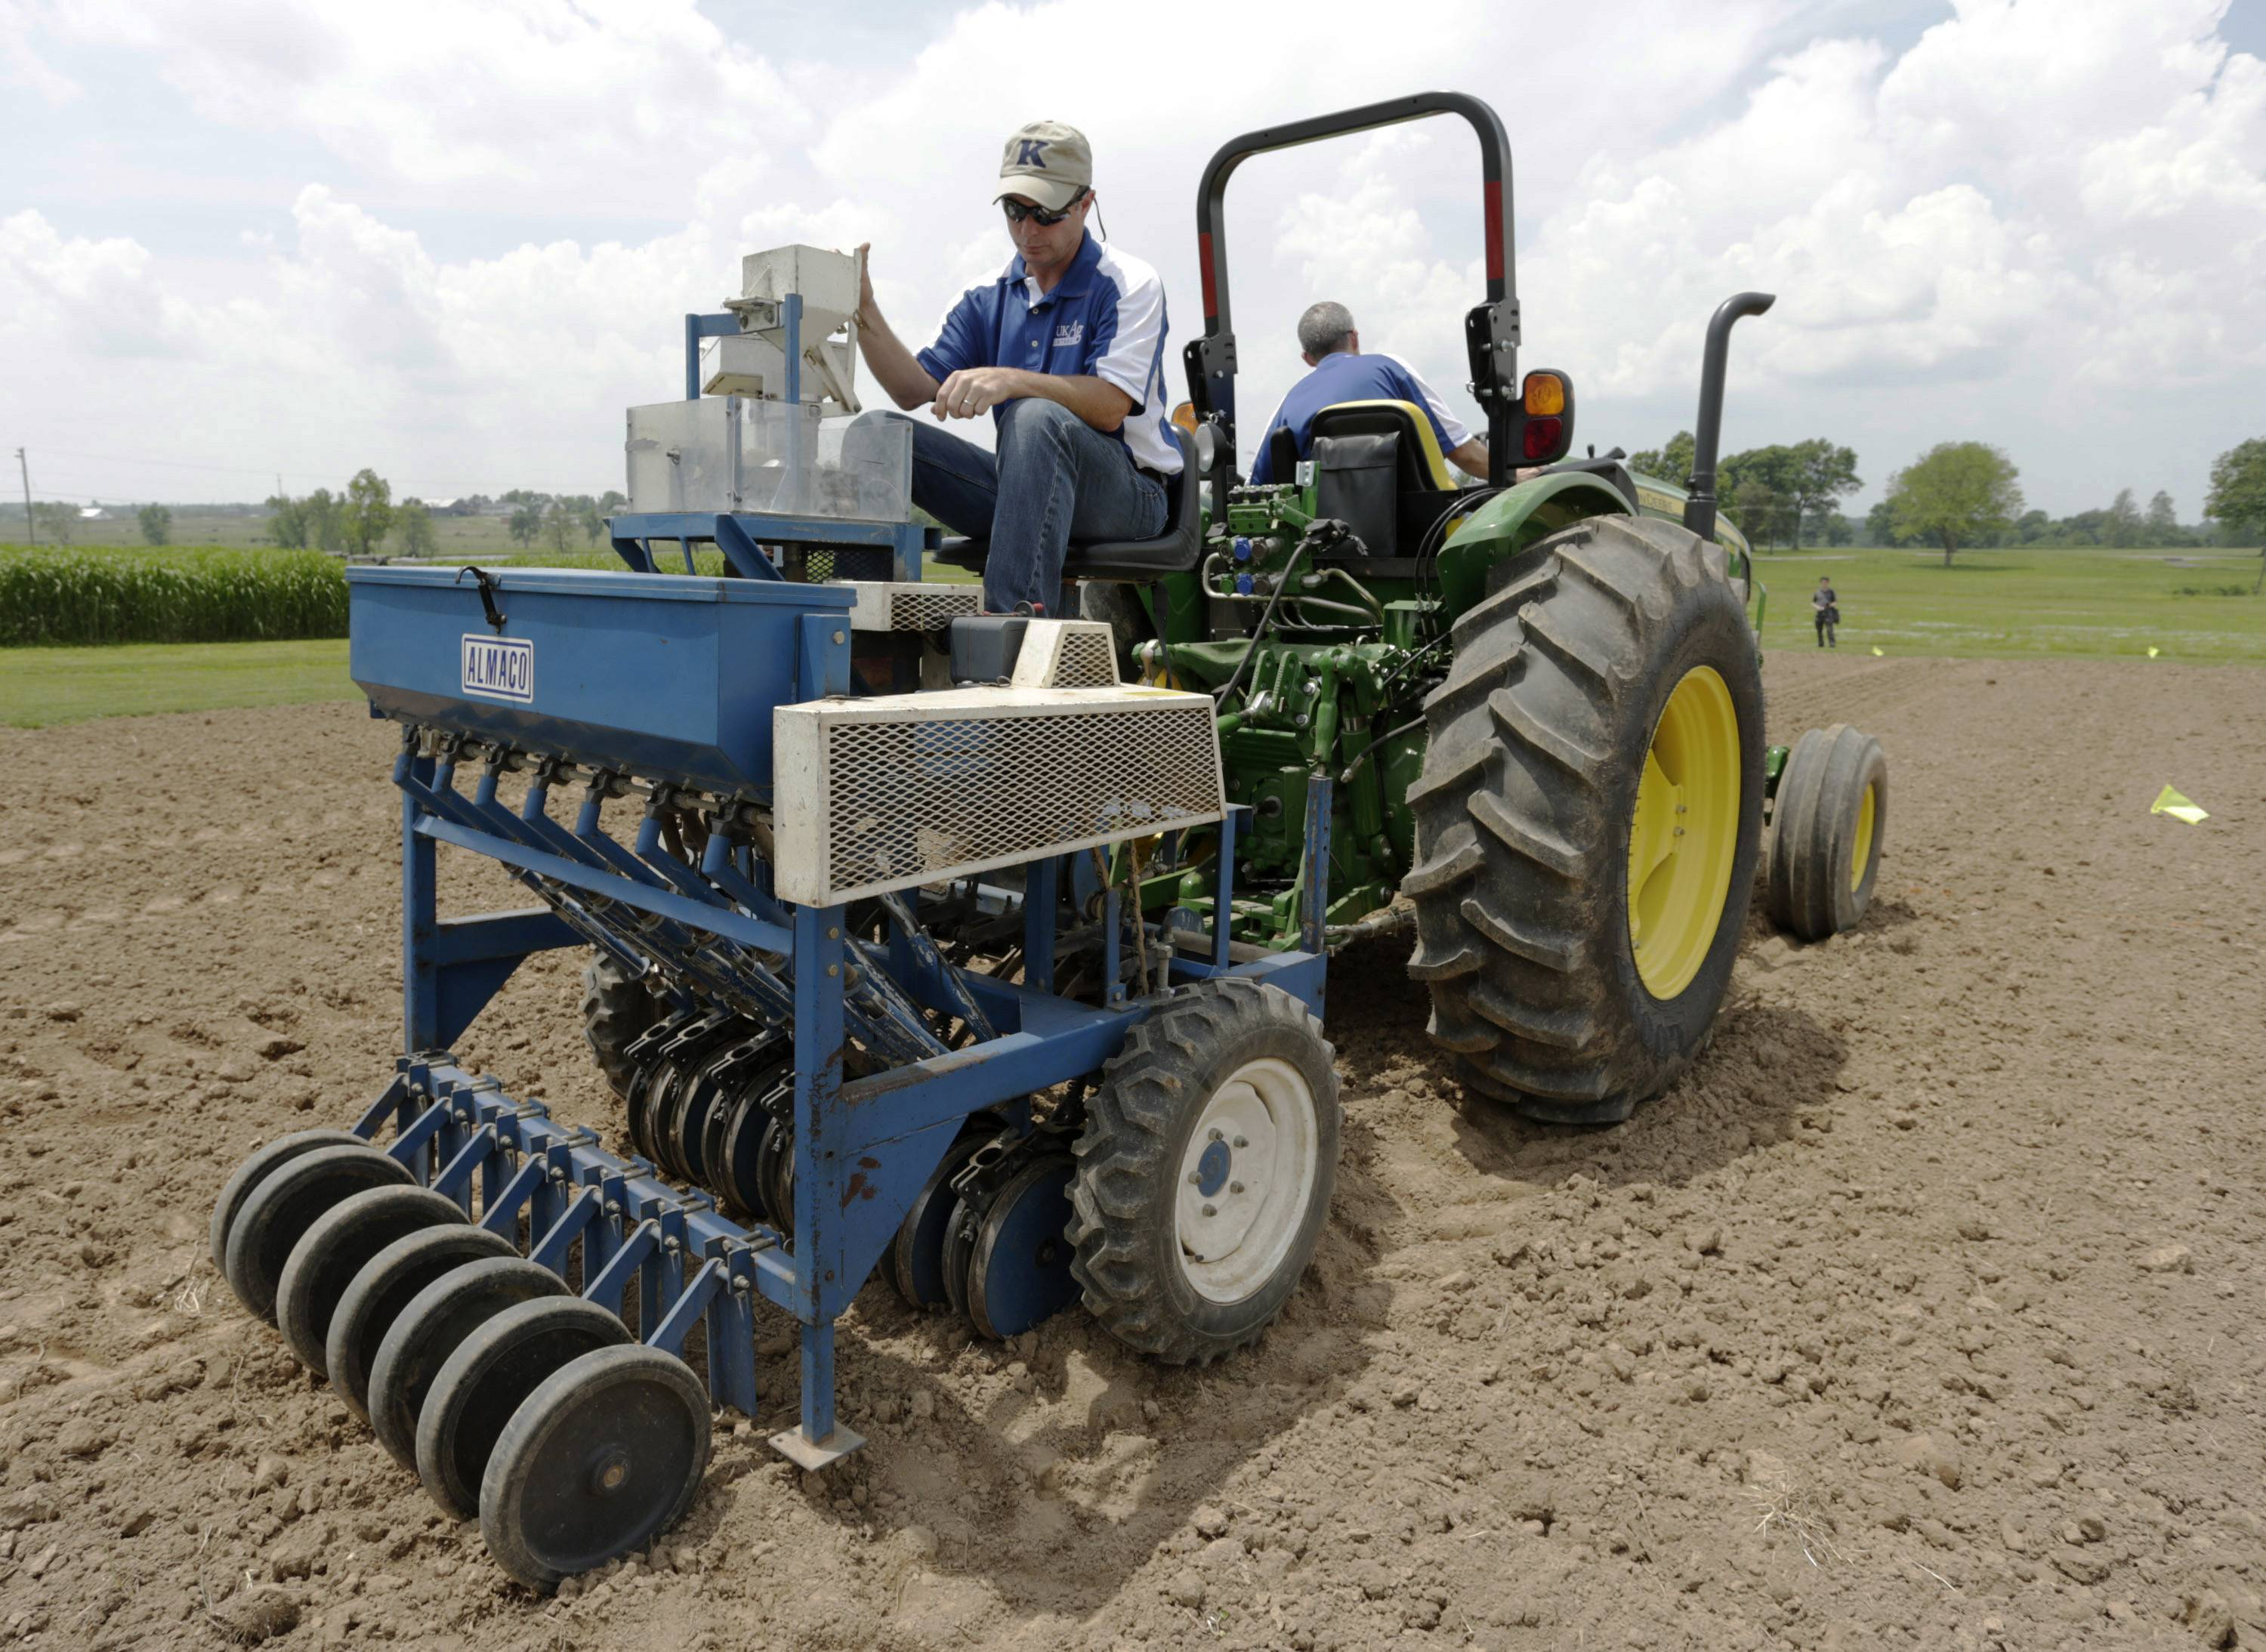 Richard Mundell sits on a plot seeder pulled by a tractor driven by Mark Sizemore, as they plant hemp seeds last month at the UK Spindletop Research Farm off of Newtown Pike in Lexington, Ky.